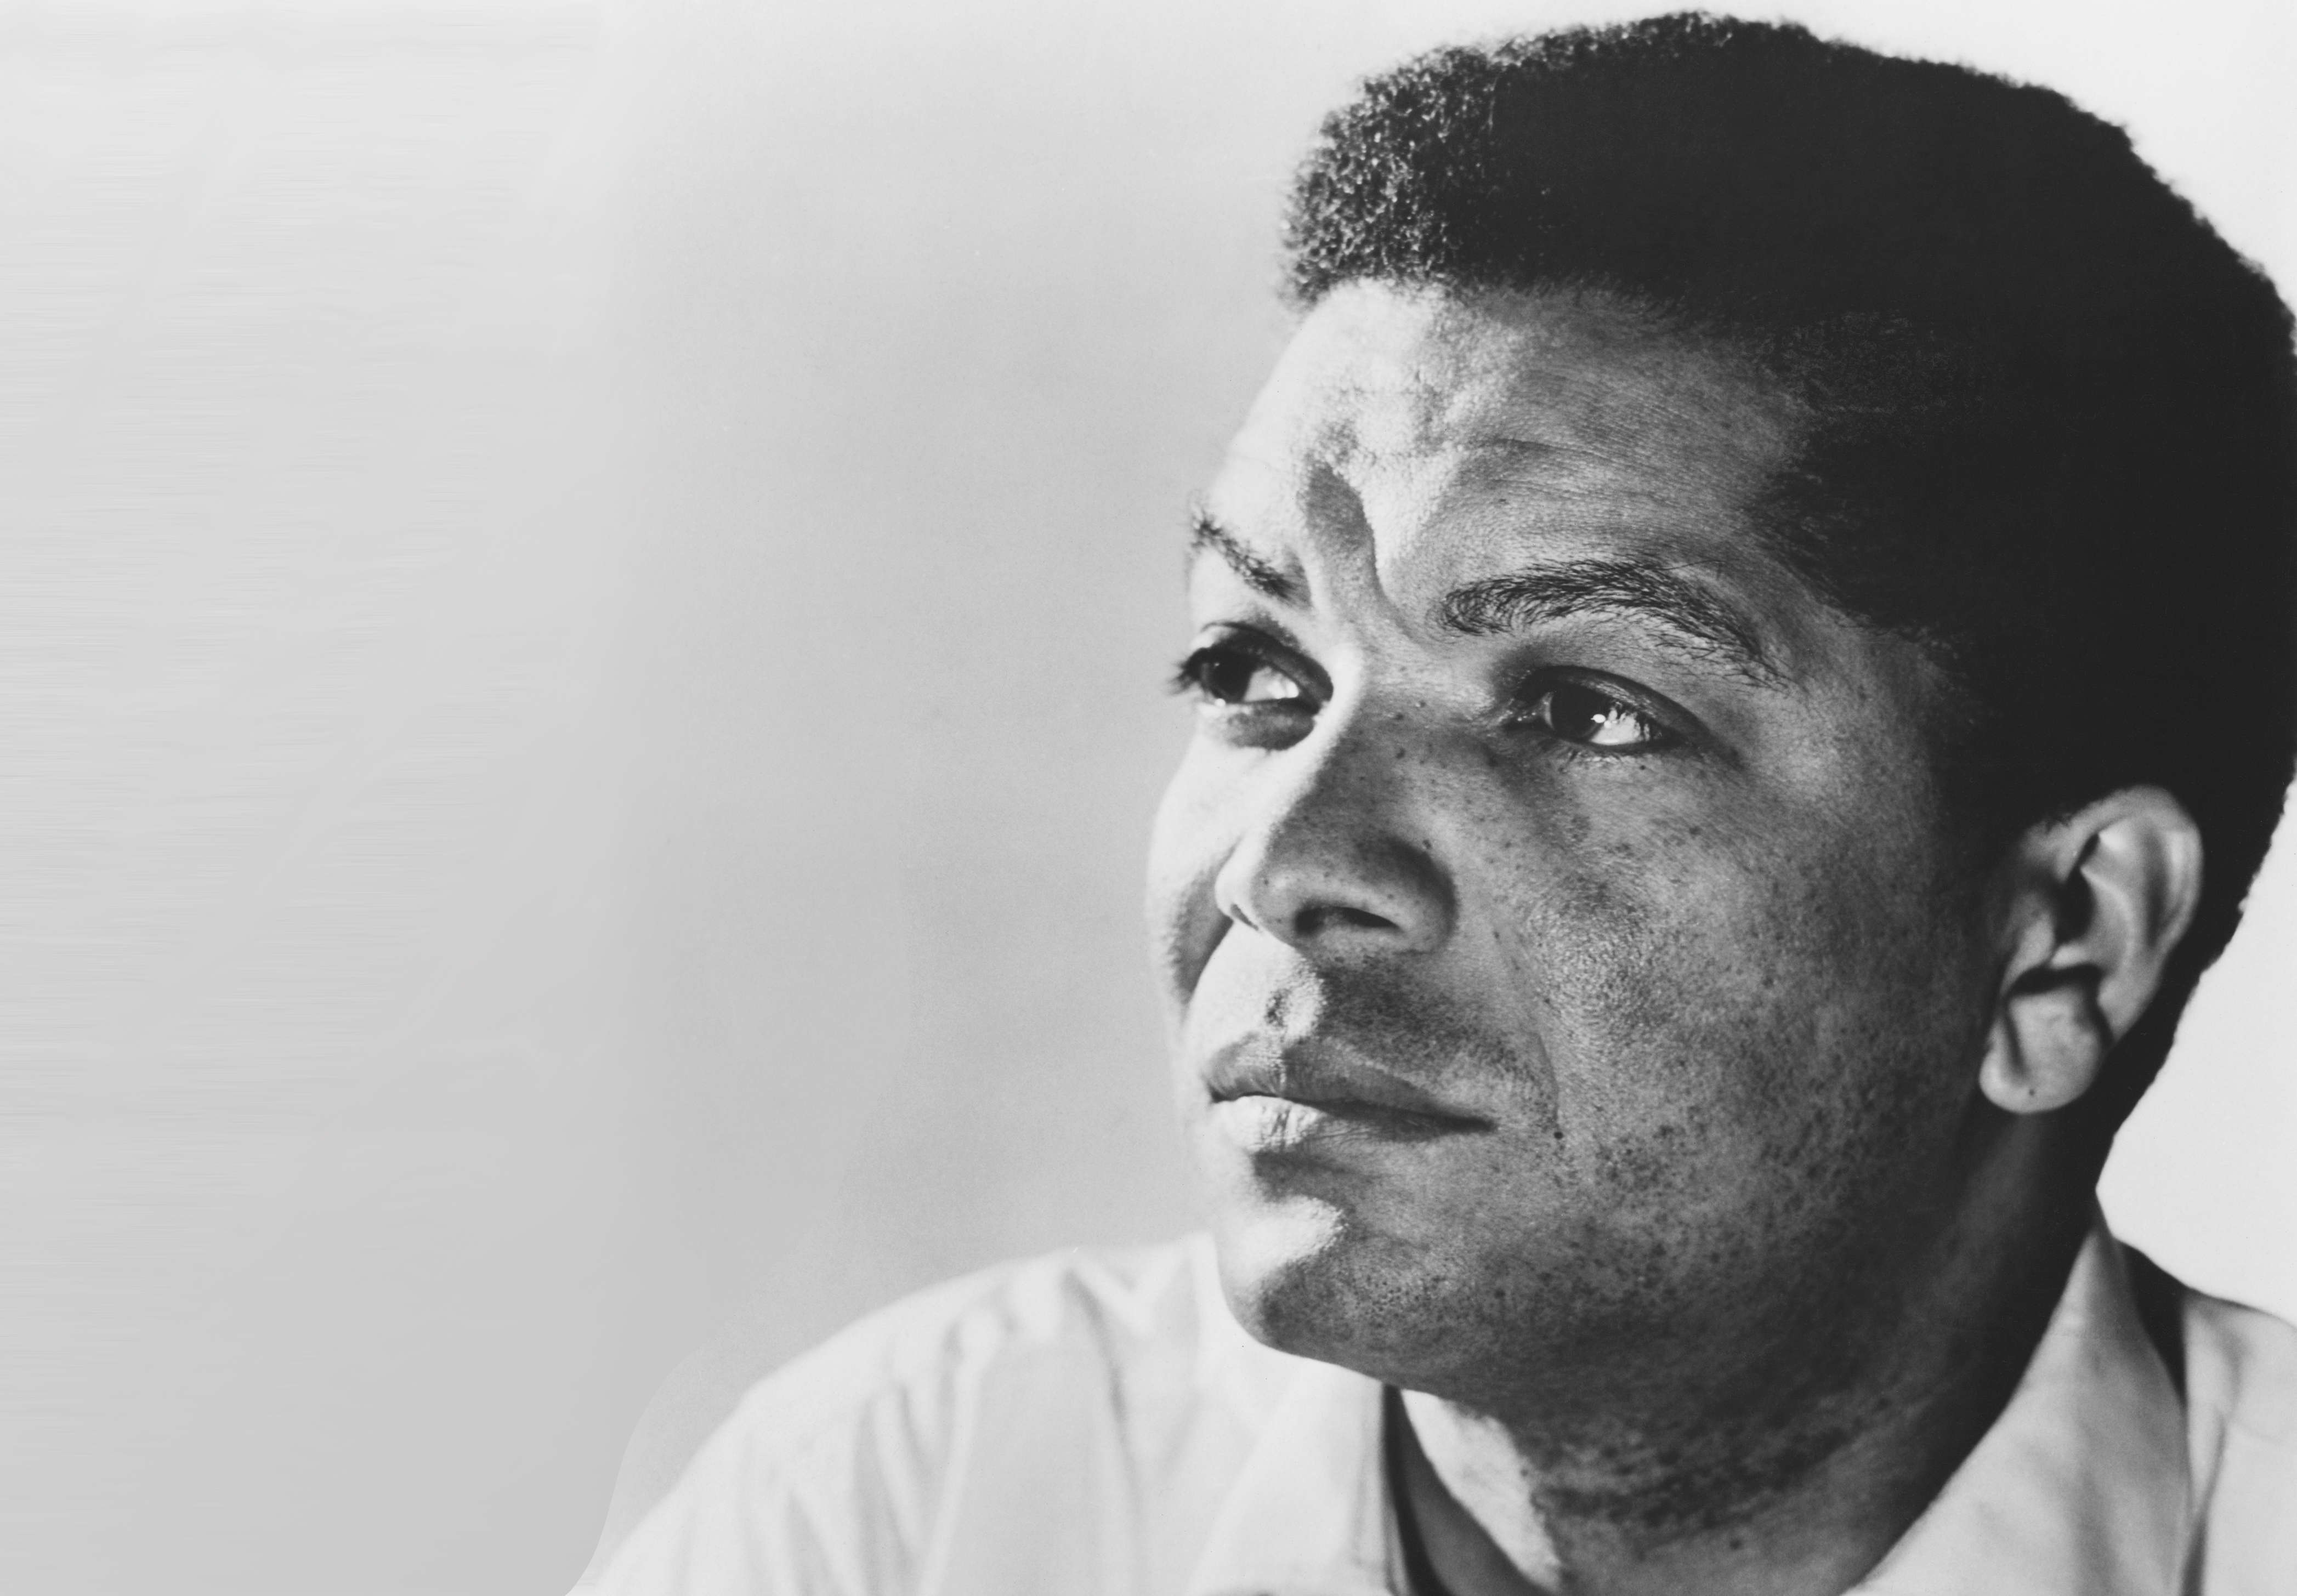 Earl Cameron, pioneering British actor with Doctor Who and 007 roles, dies at 102